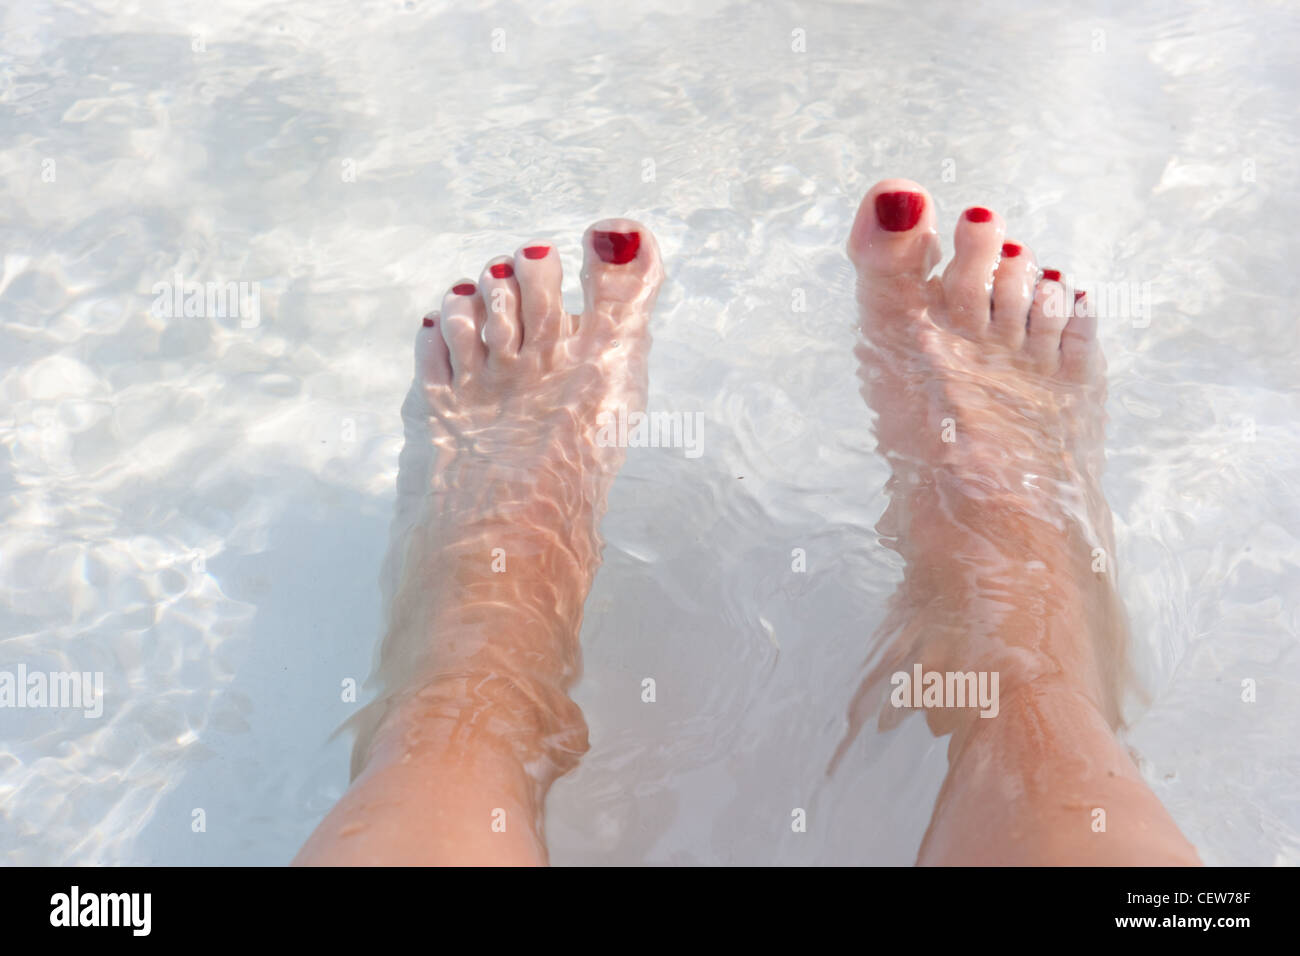 Toenail Stock Photos & Toenail Stock Images - Alamy